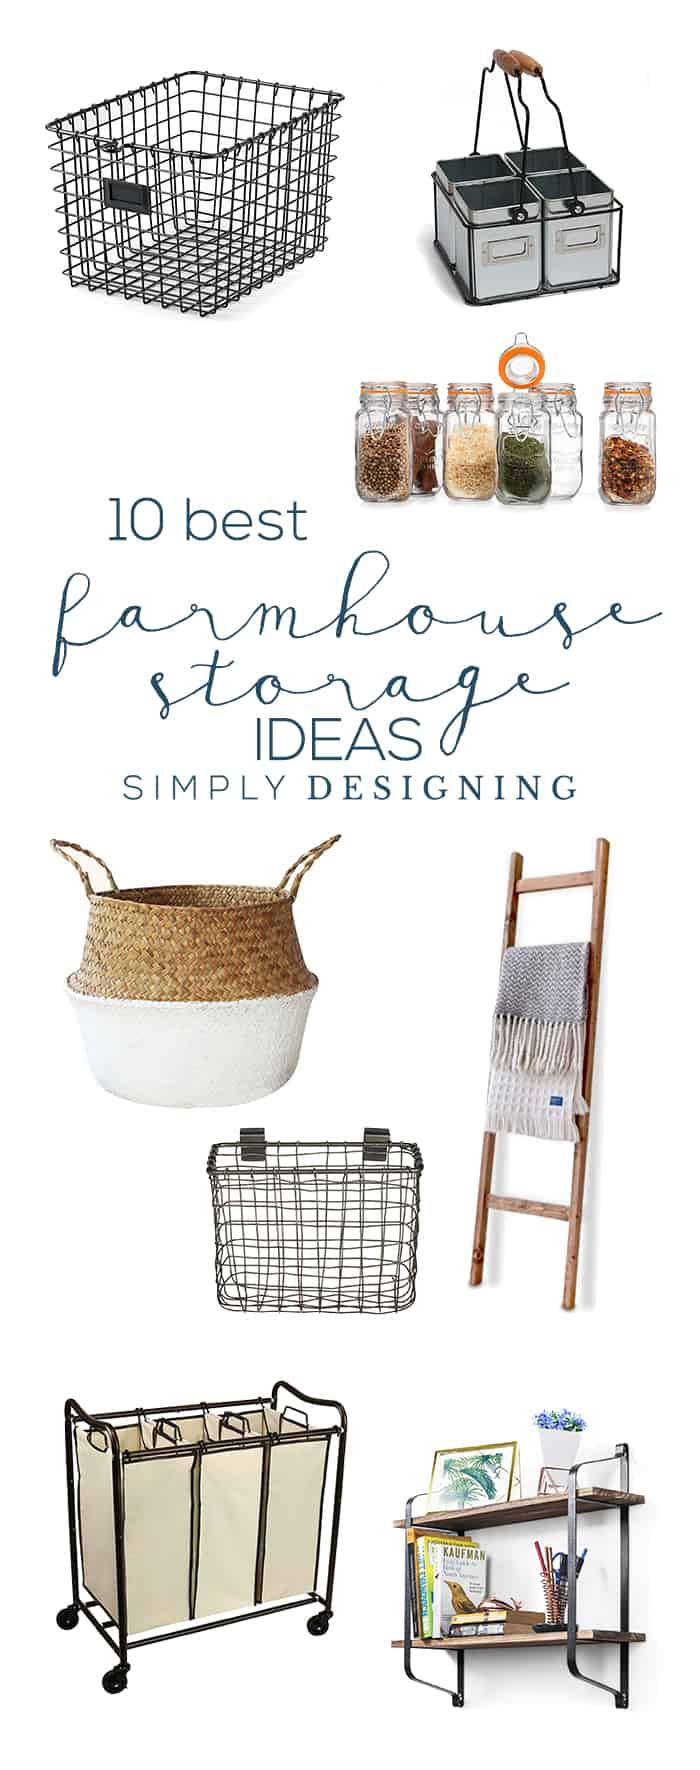 The 10 Best Farmhouse Storage Ideas - beautiful farmhouse storage ideas that are easy to integrate into your home today and totally affordable